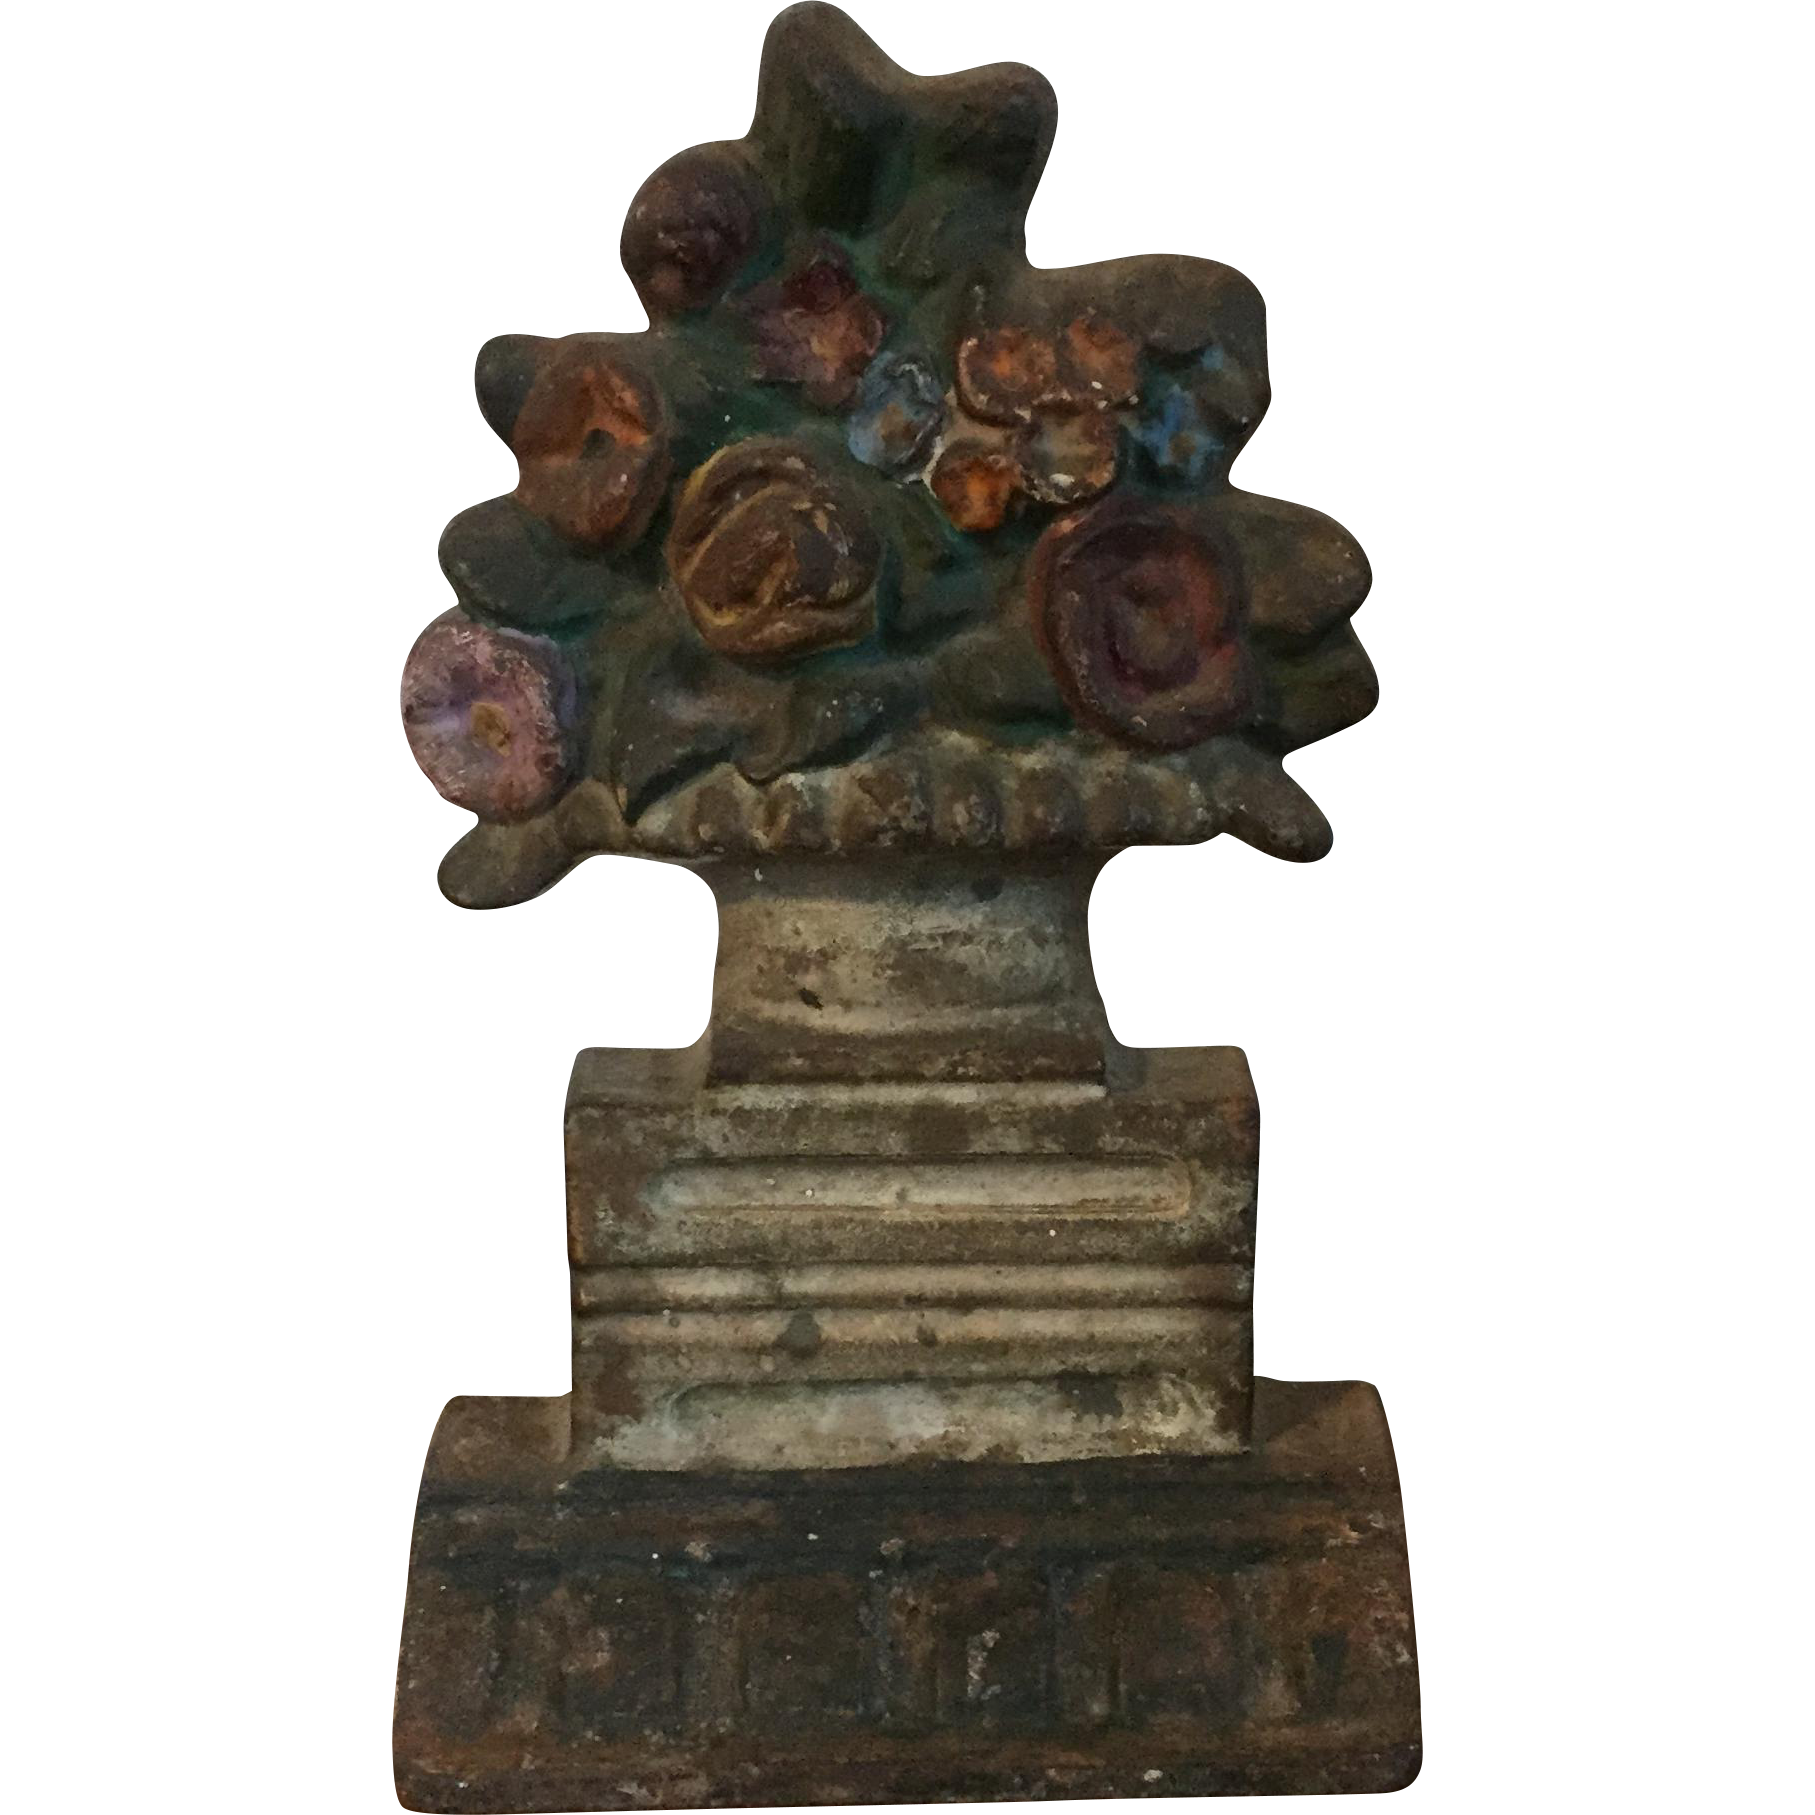 Antique 19th century American Cast Iron Door Stop in the Form of a Classical Urn with Flowers in the Greek Revival Taste